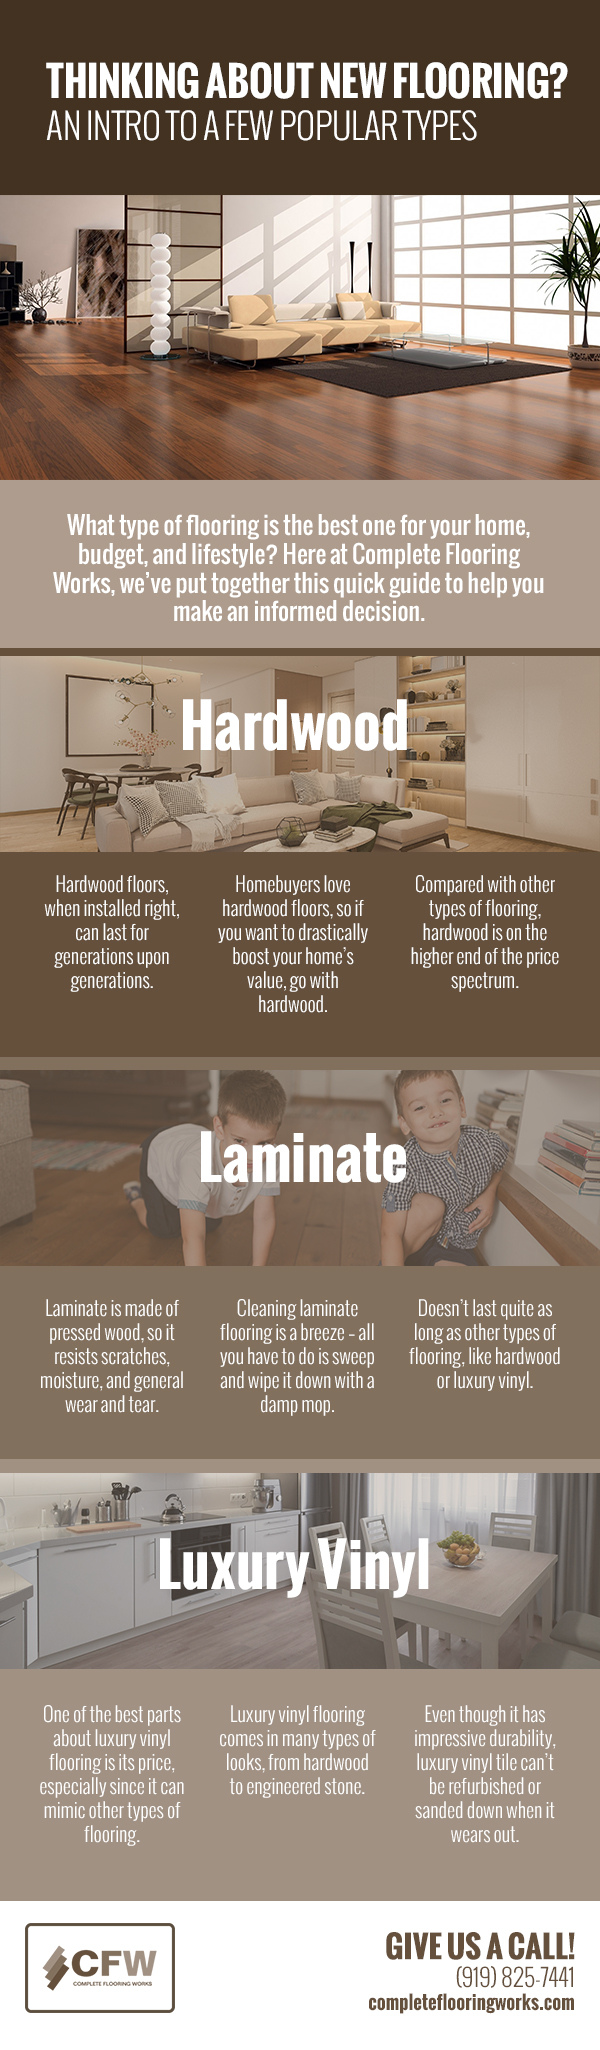 Thinking About New Flooring? An Intro to a Few Popular Types [Infographic]